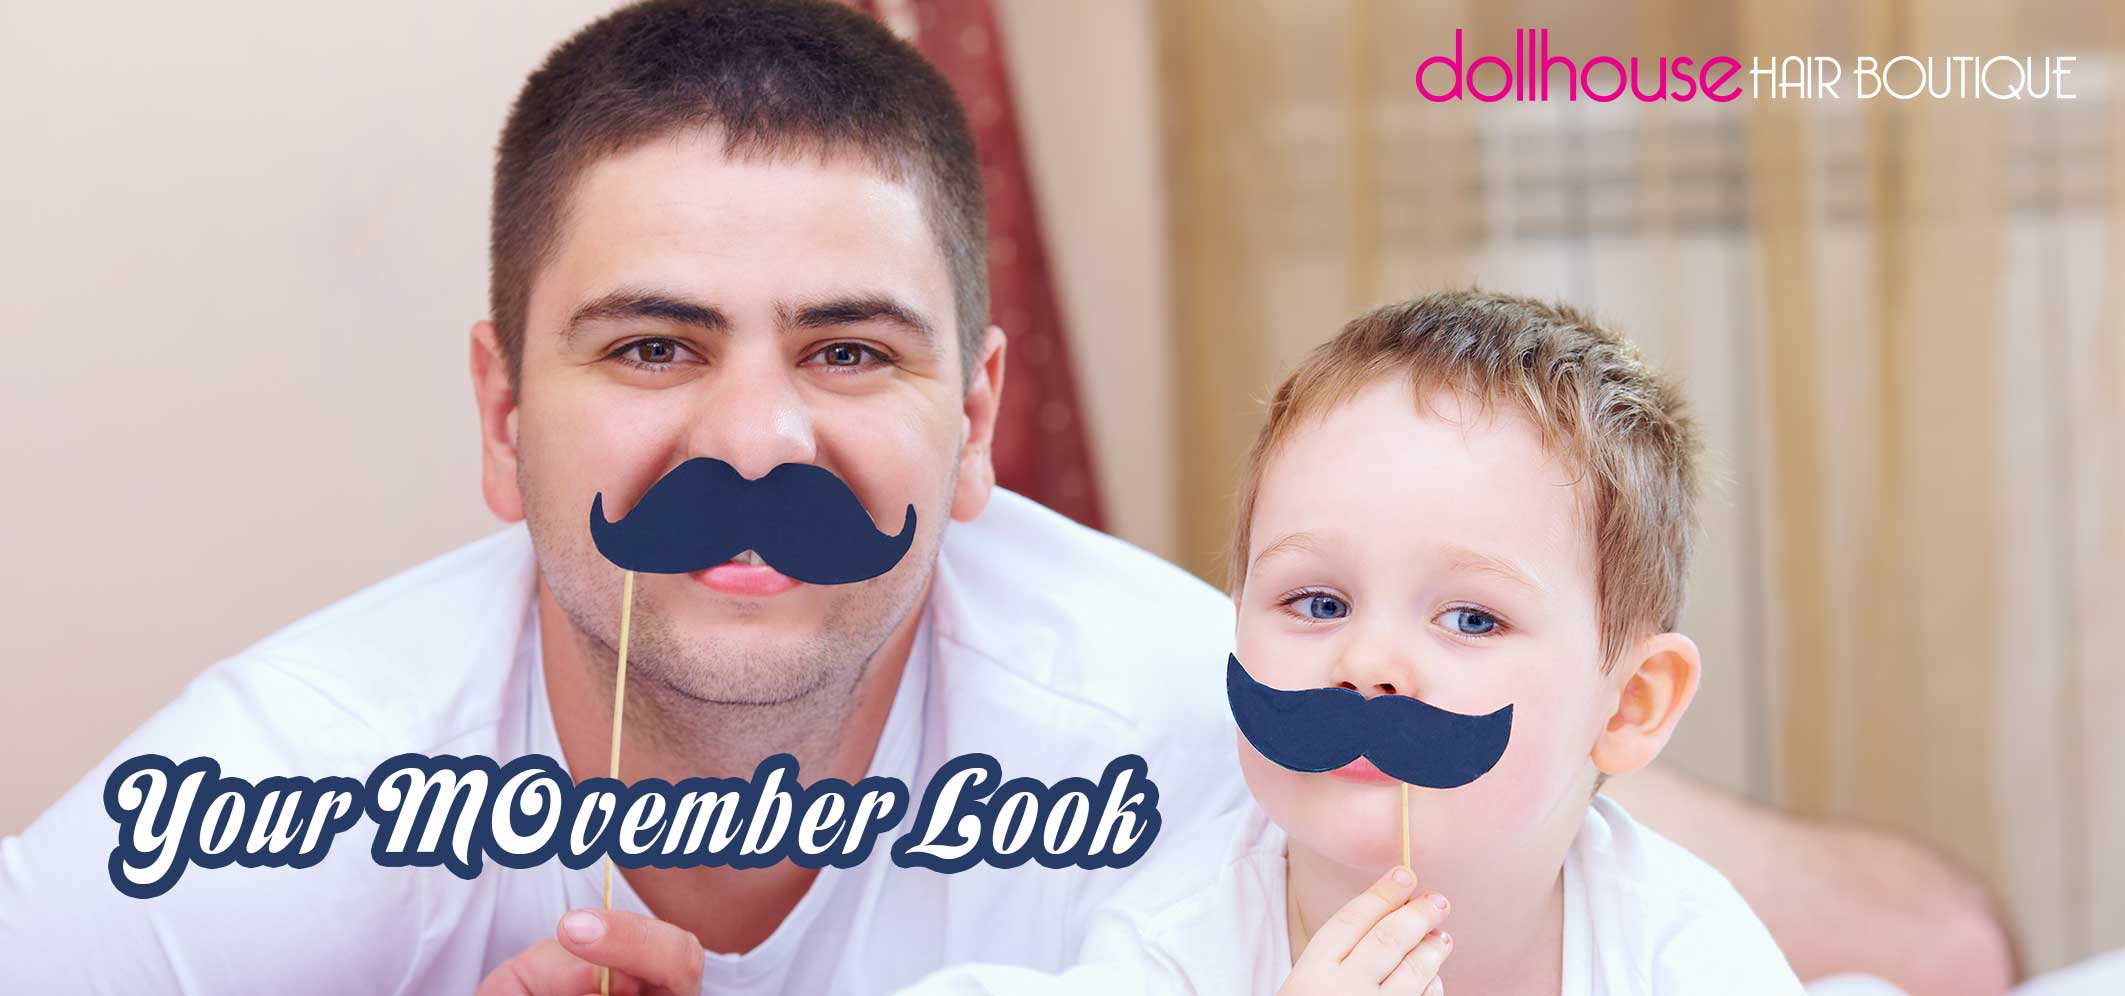 Your-MOvember-Look